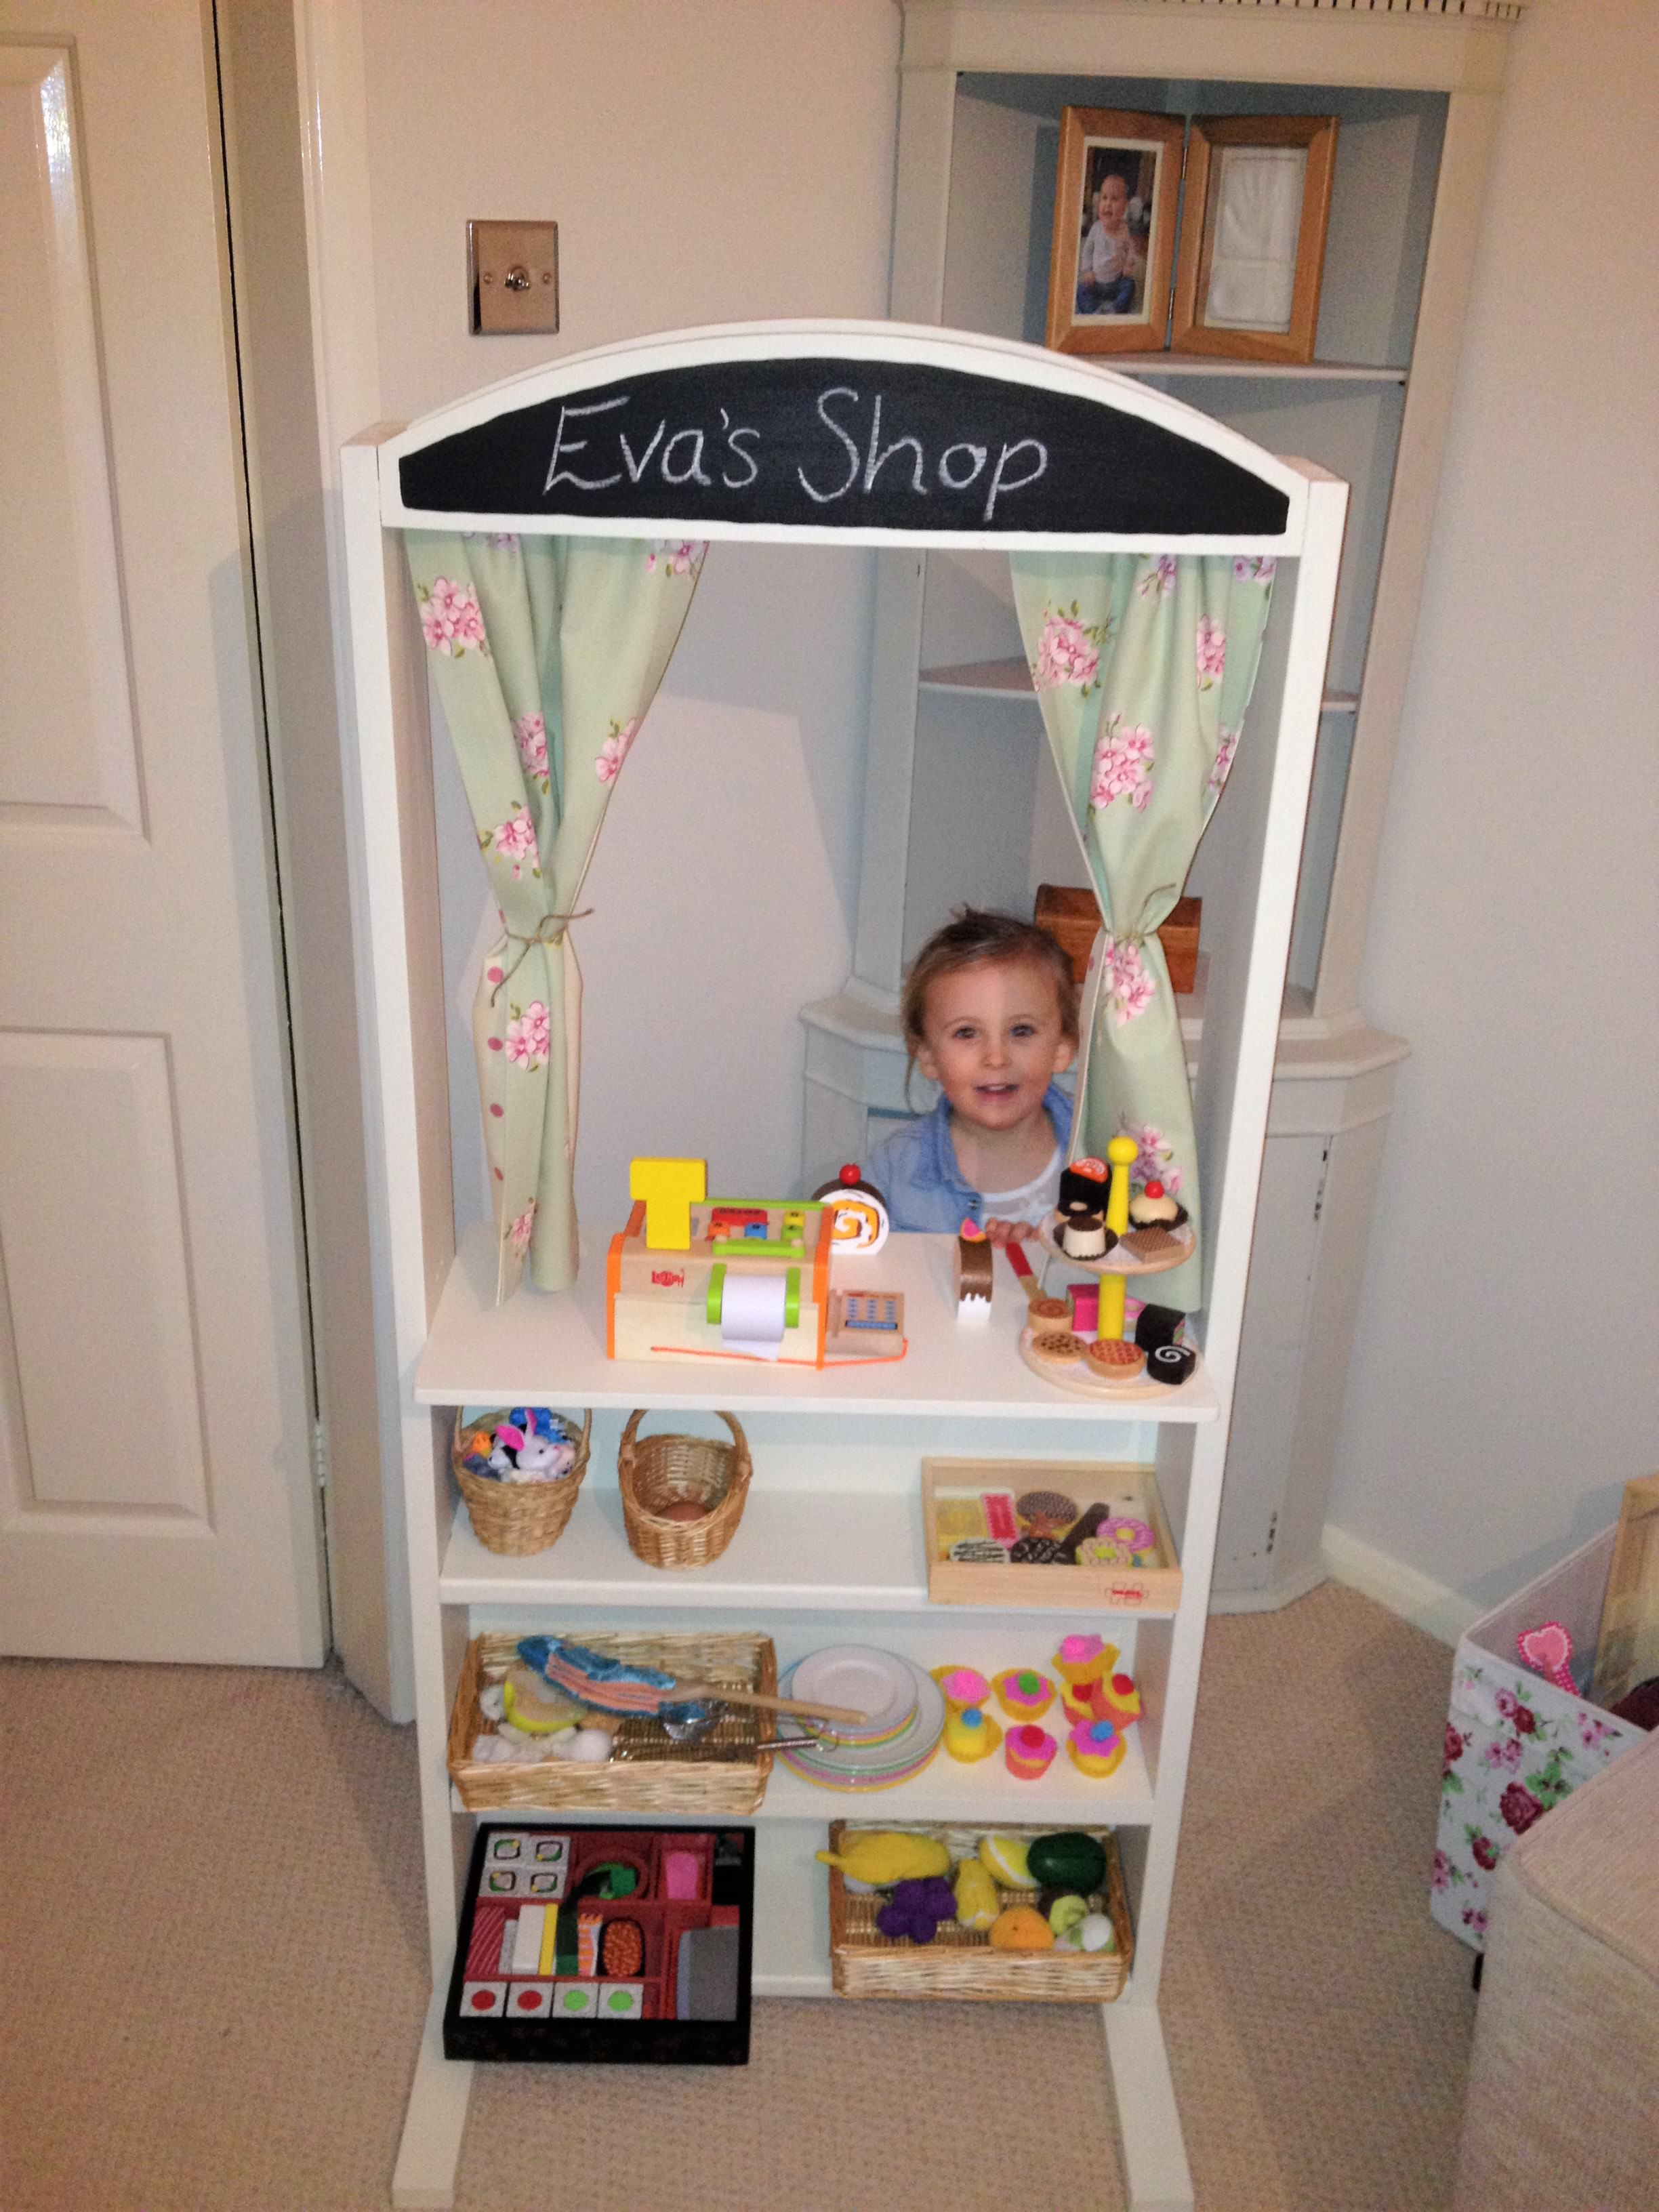 Hand Made Wooden Play Shop & Puppet Theatre